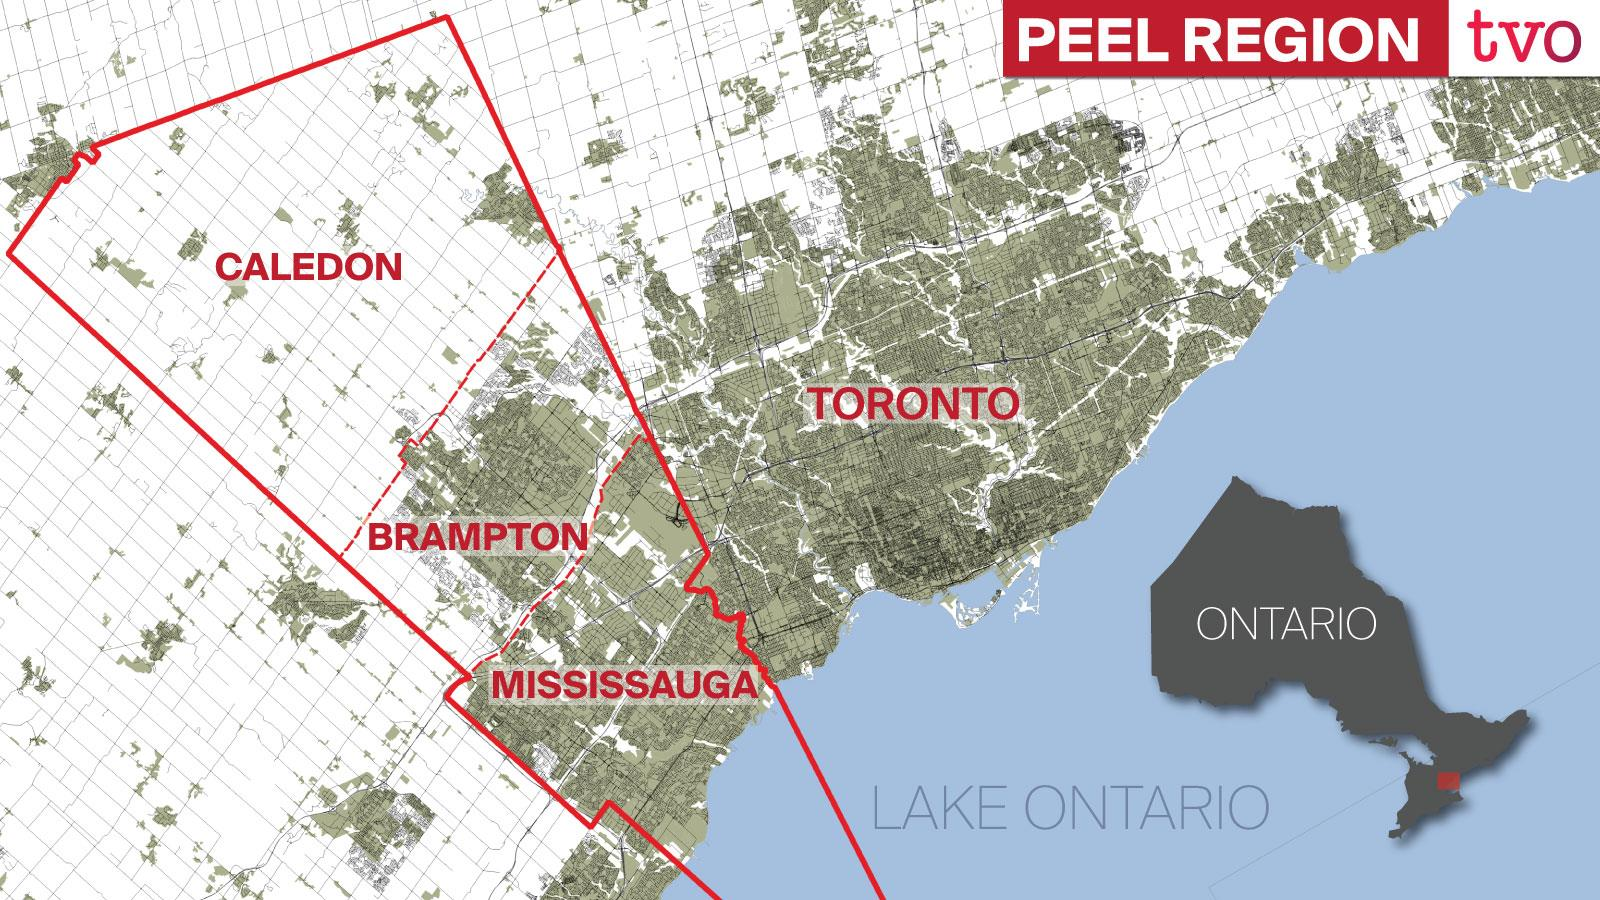 Why Peel Region S Largest City Wants Out Tvo Org